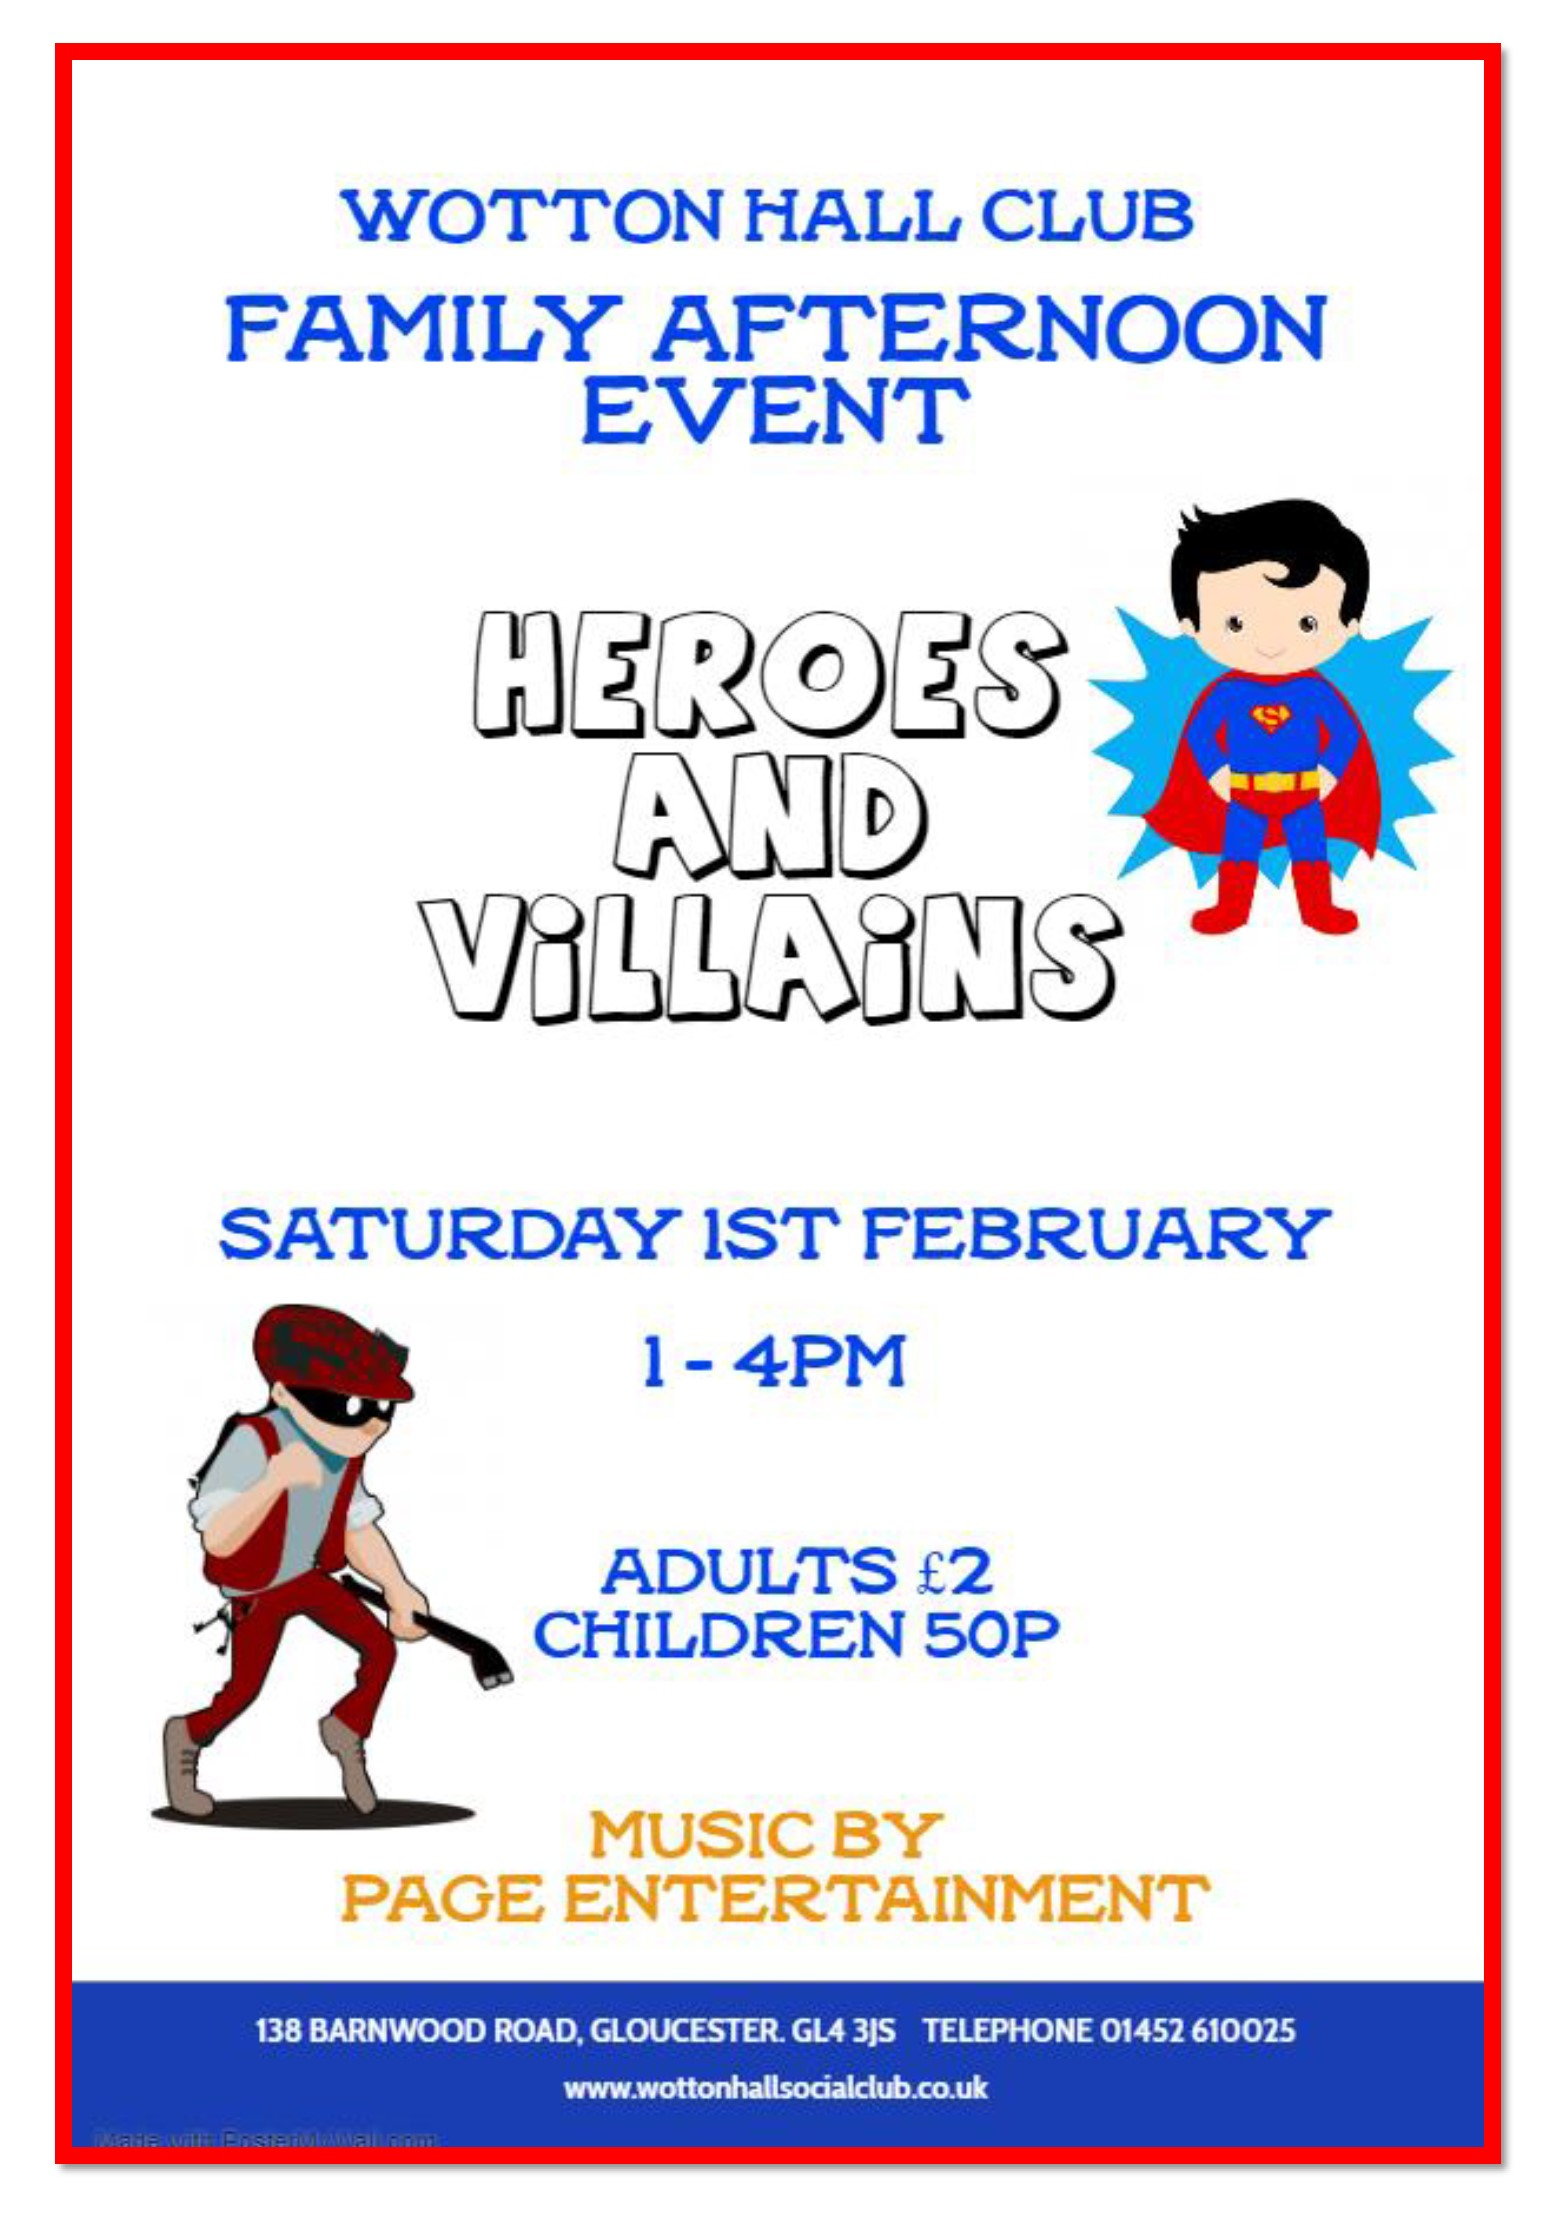 Family Afternoon Event Heroes Villains 1st Feb 2020 Made with PosterMyWall 1